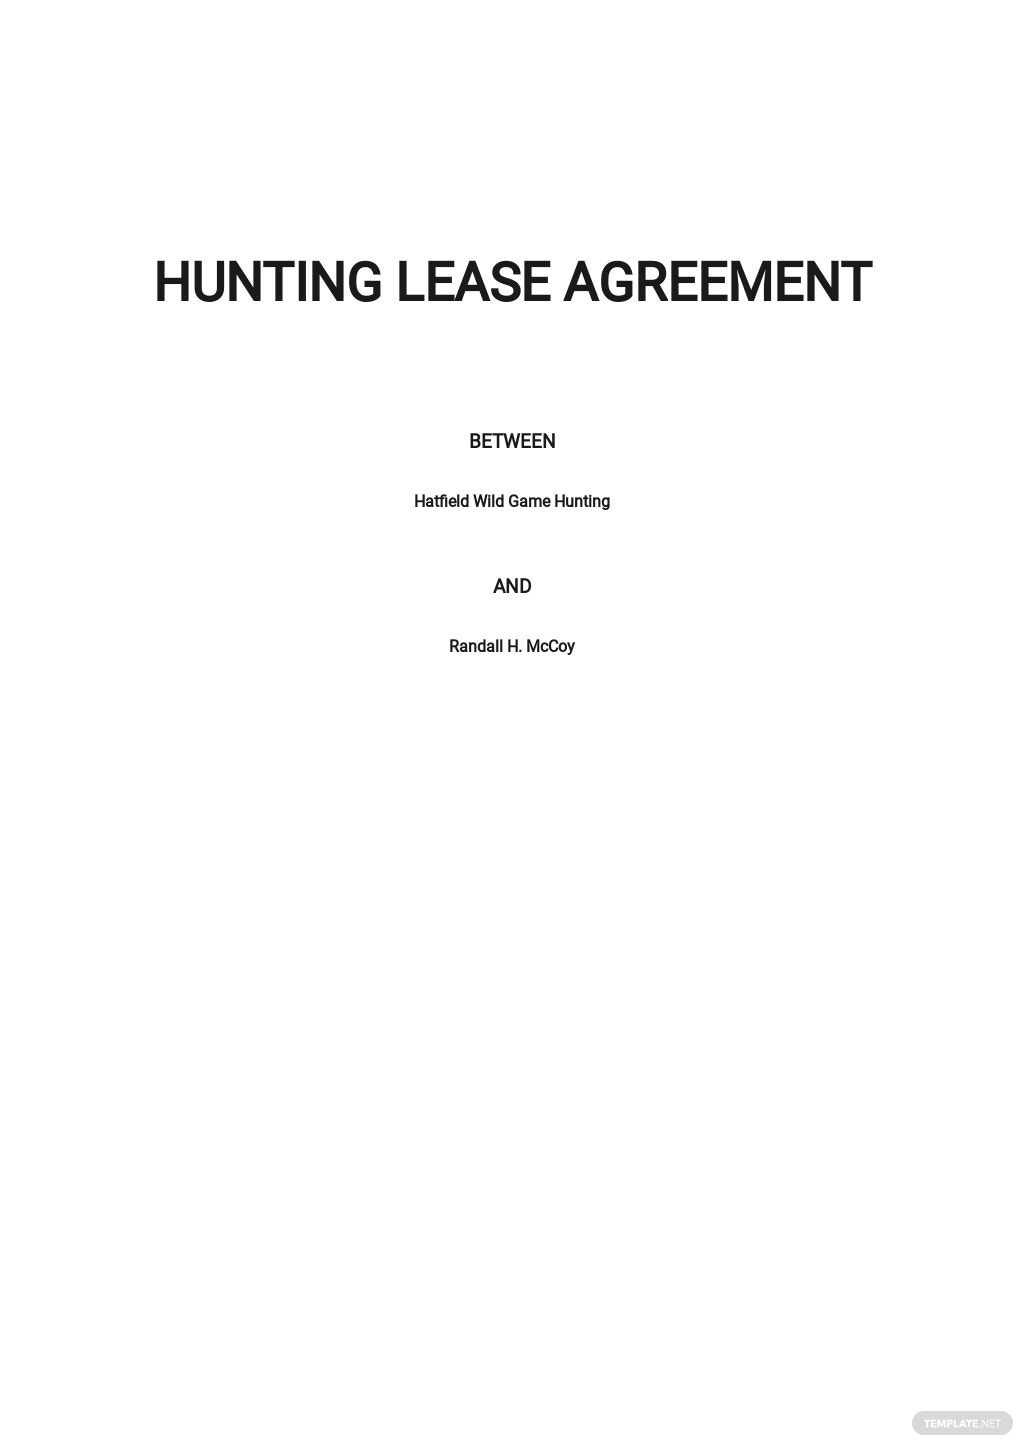 Hunting Lease Agreement Template.jpe